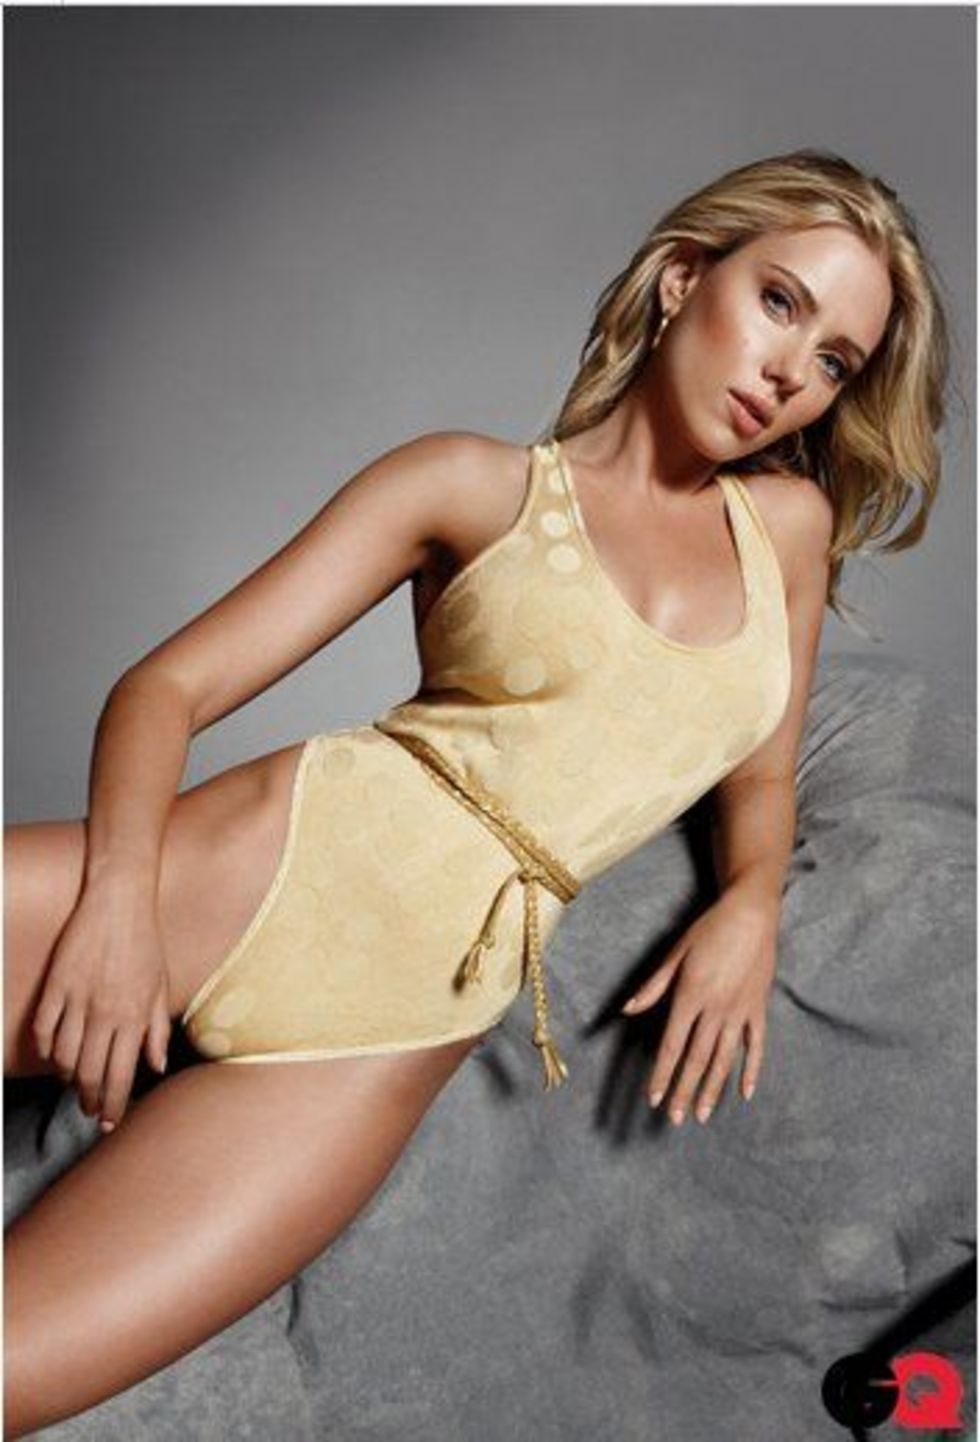 Rocco Sigfredi Scarlett-johansson-gq-magazine-photo-shoot-02